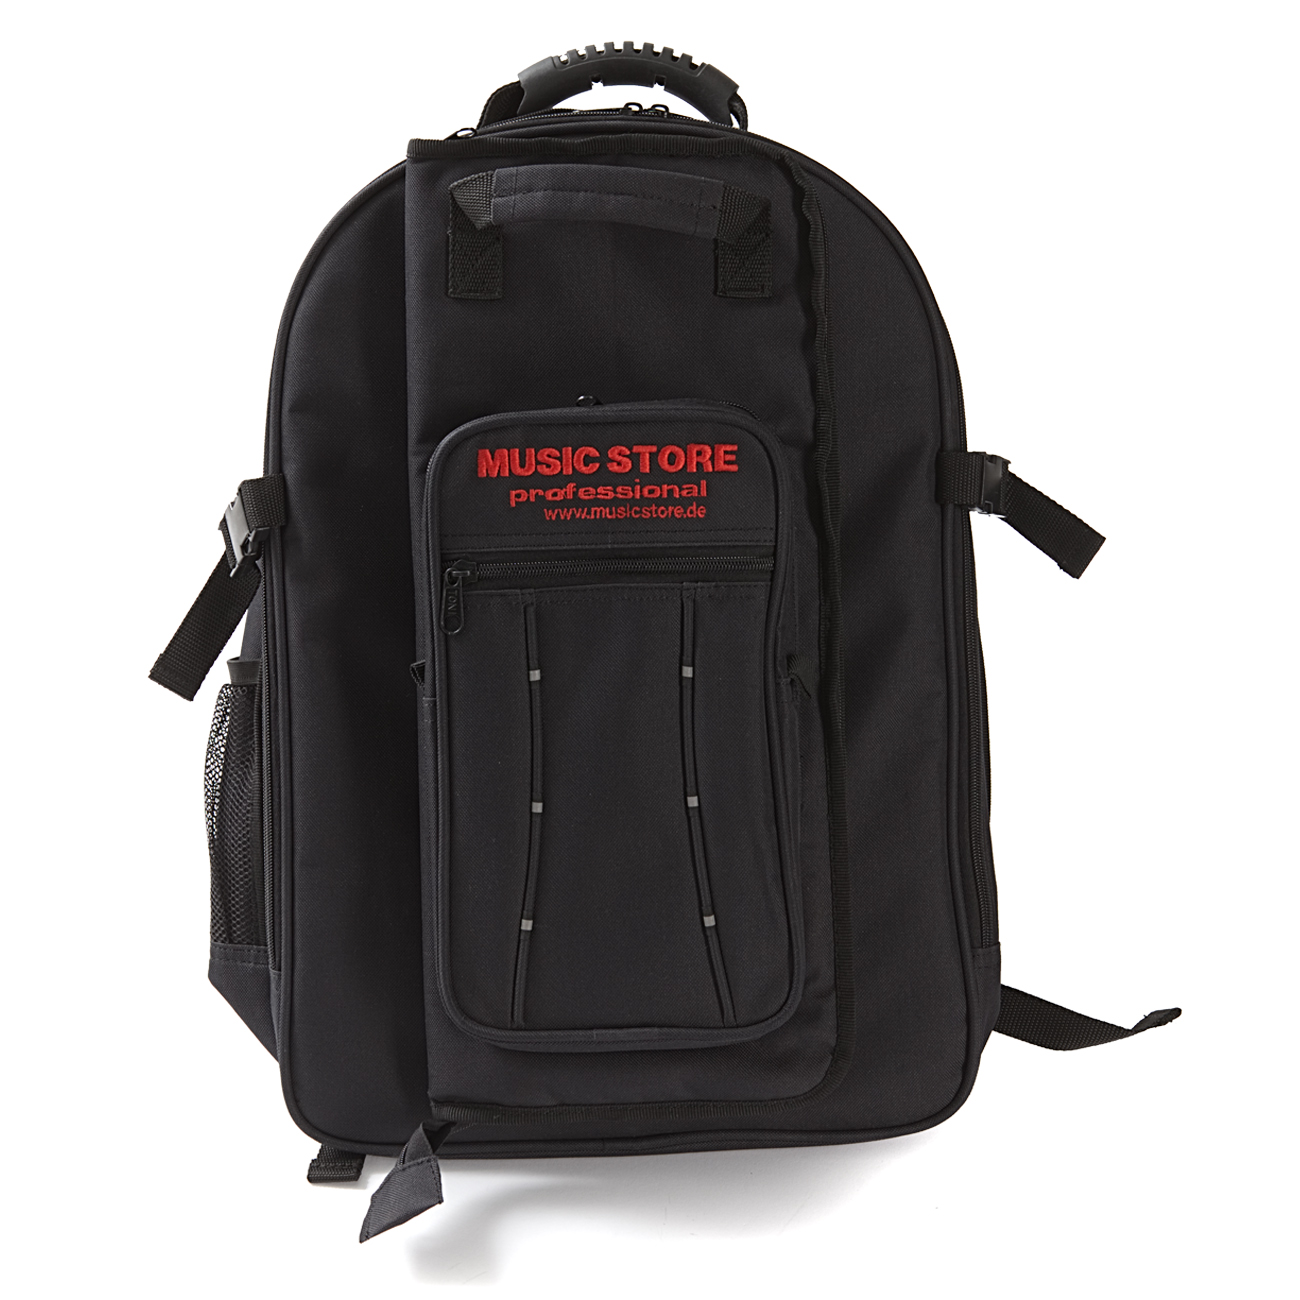 MS_Drummer_Backpack_1